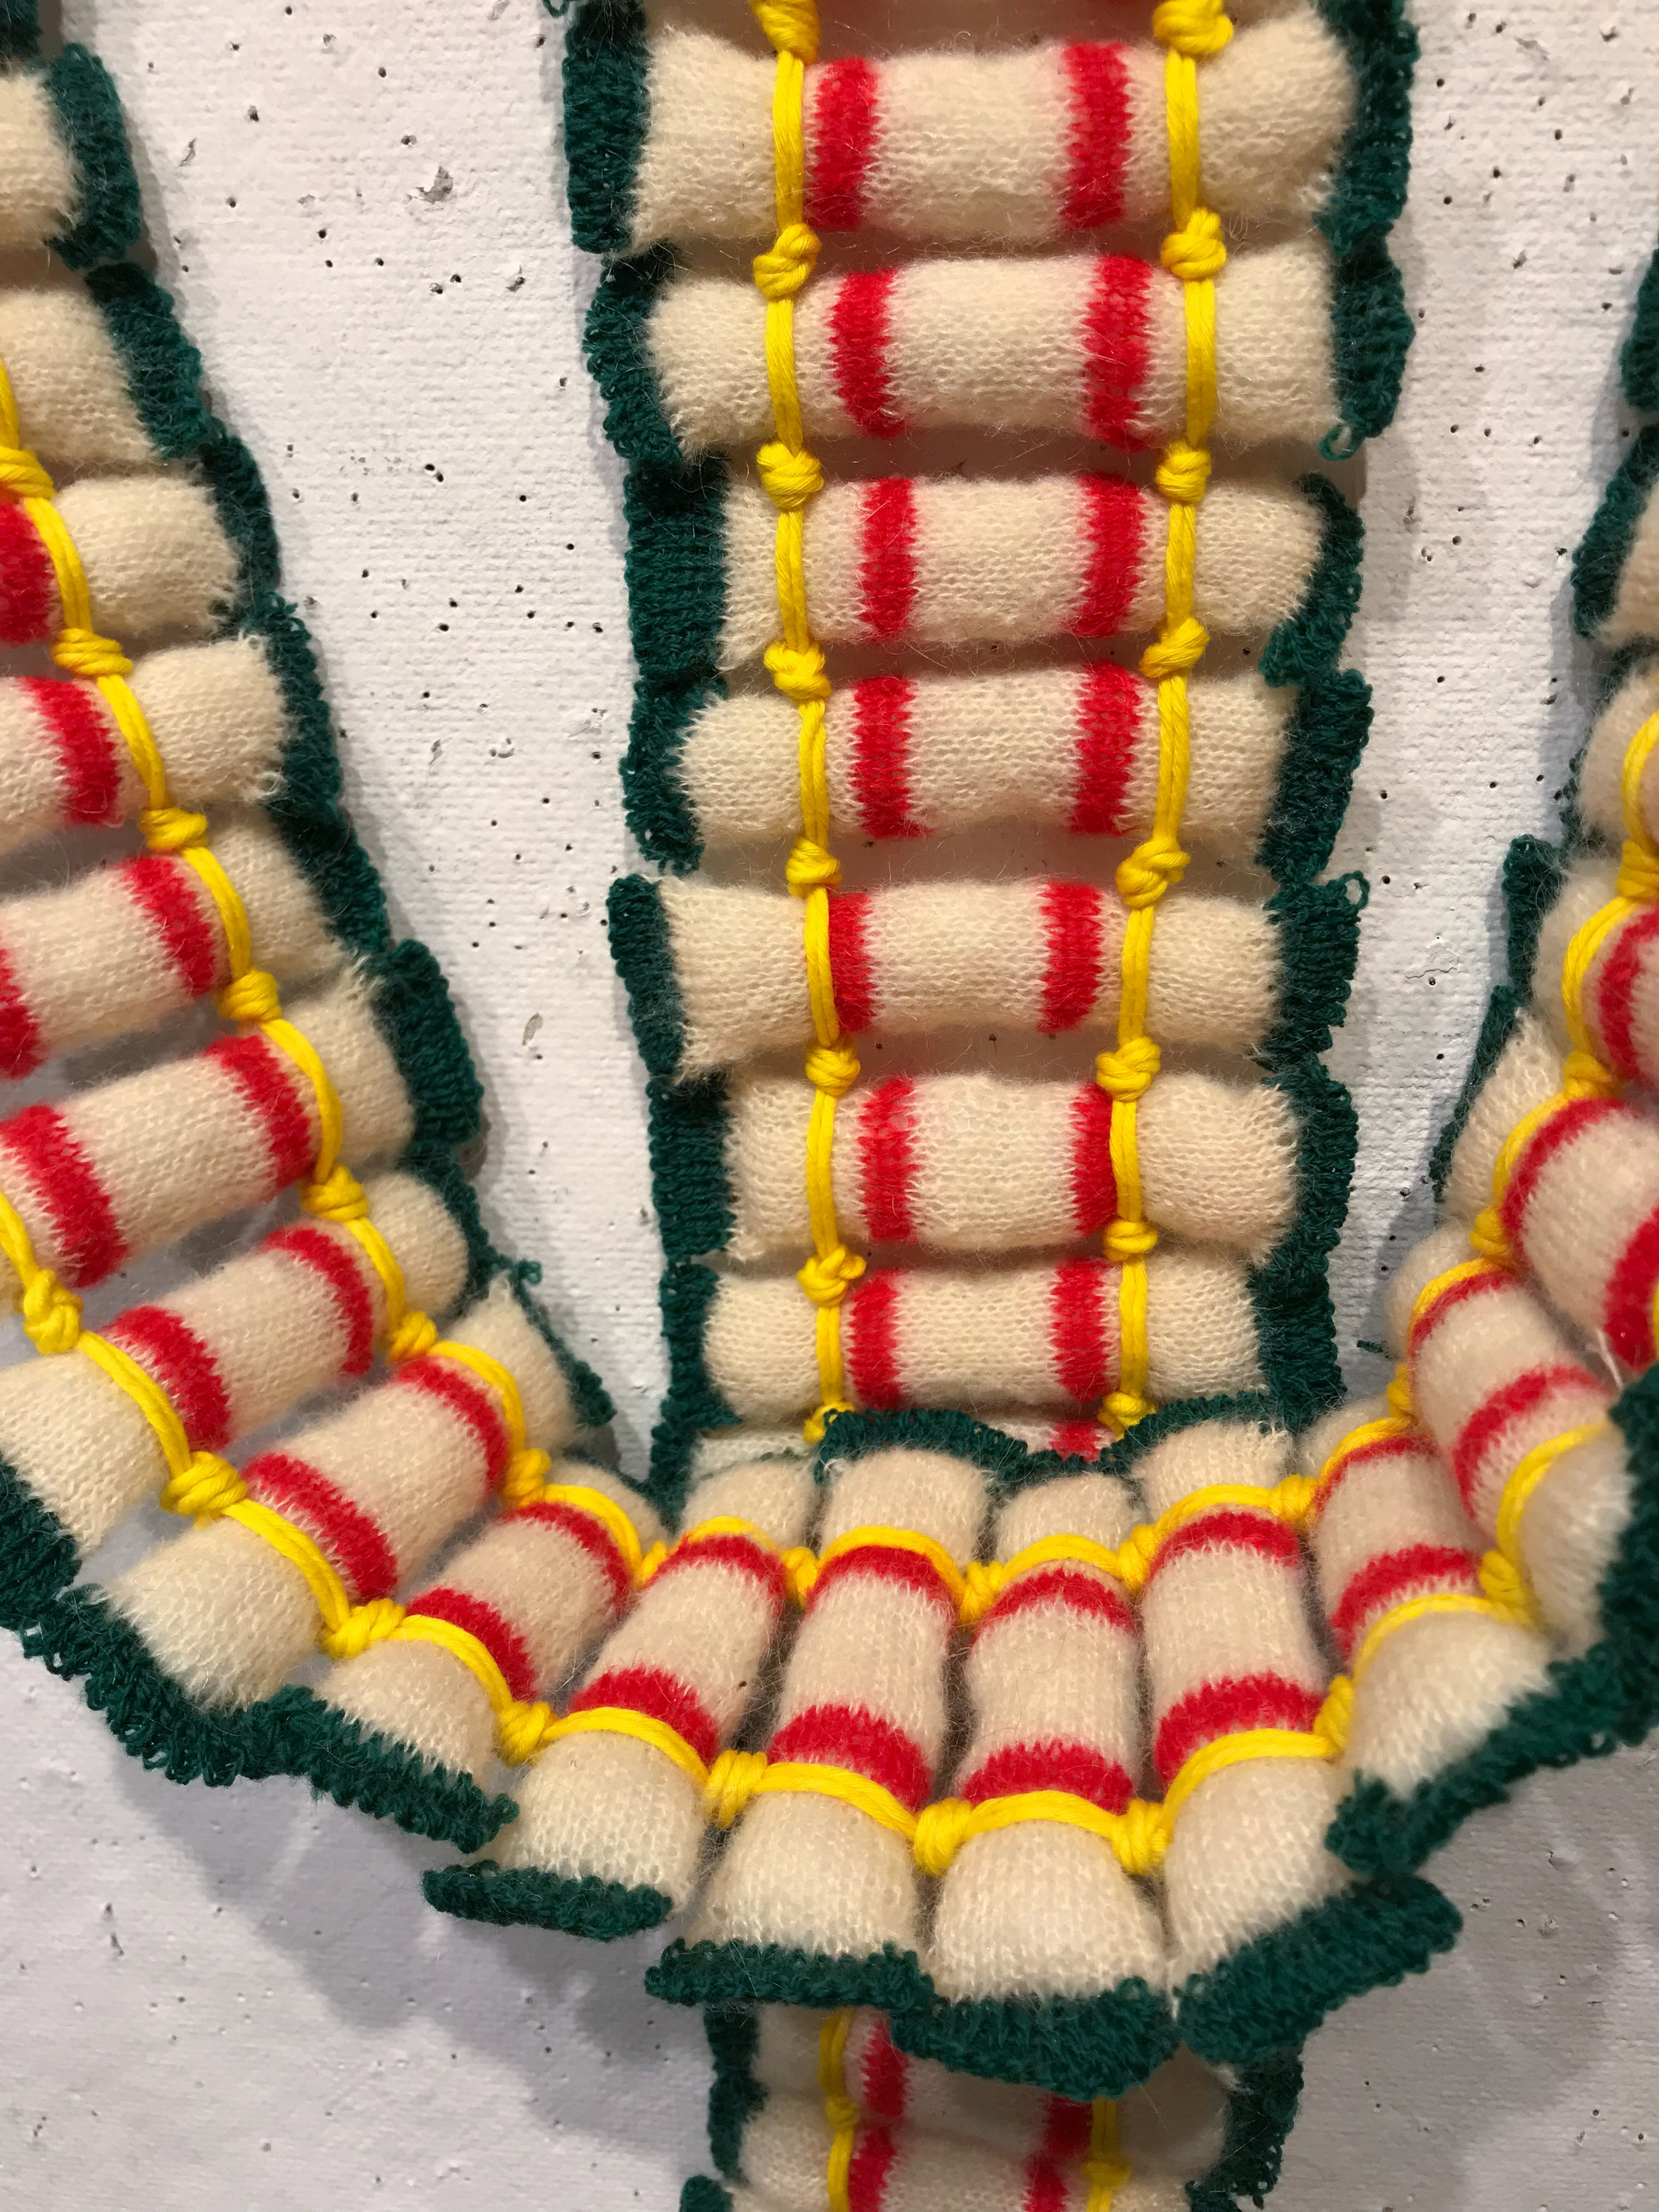 All of the tofus were knitted separately, and then tied together into strips.